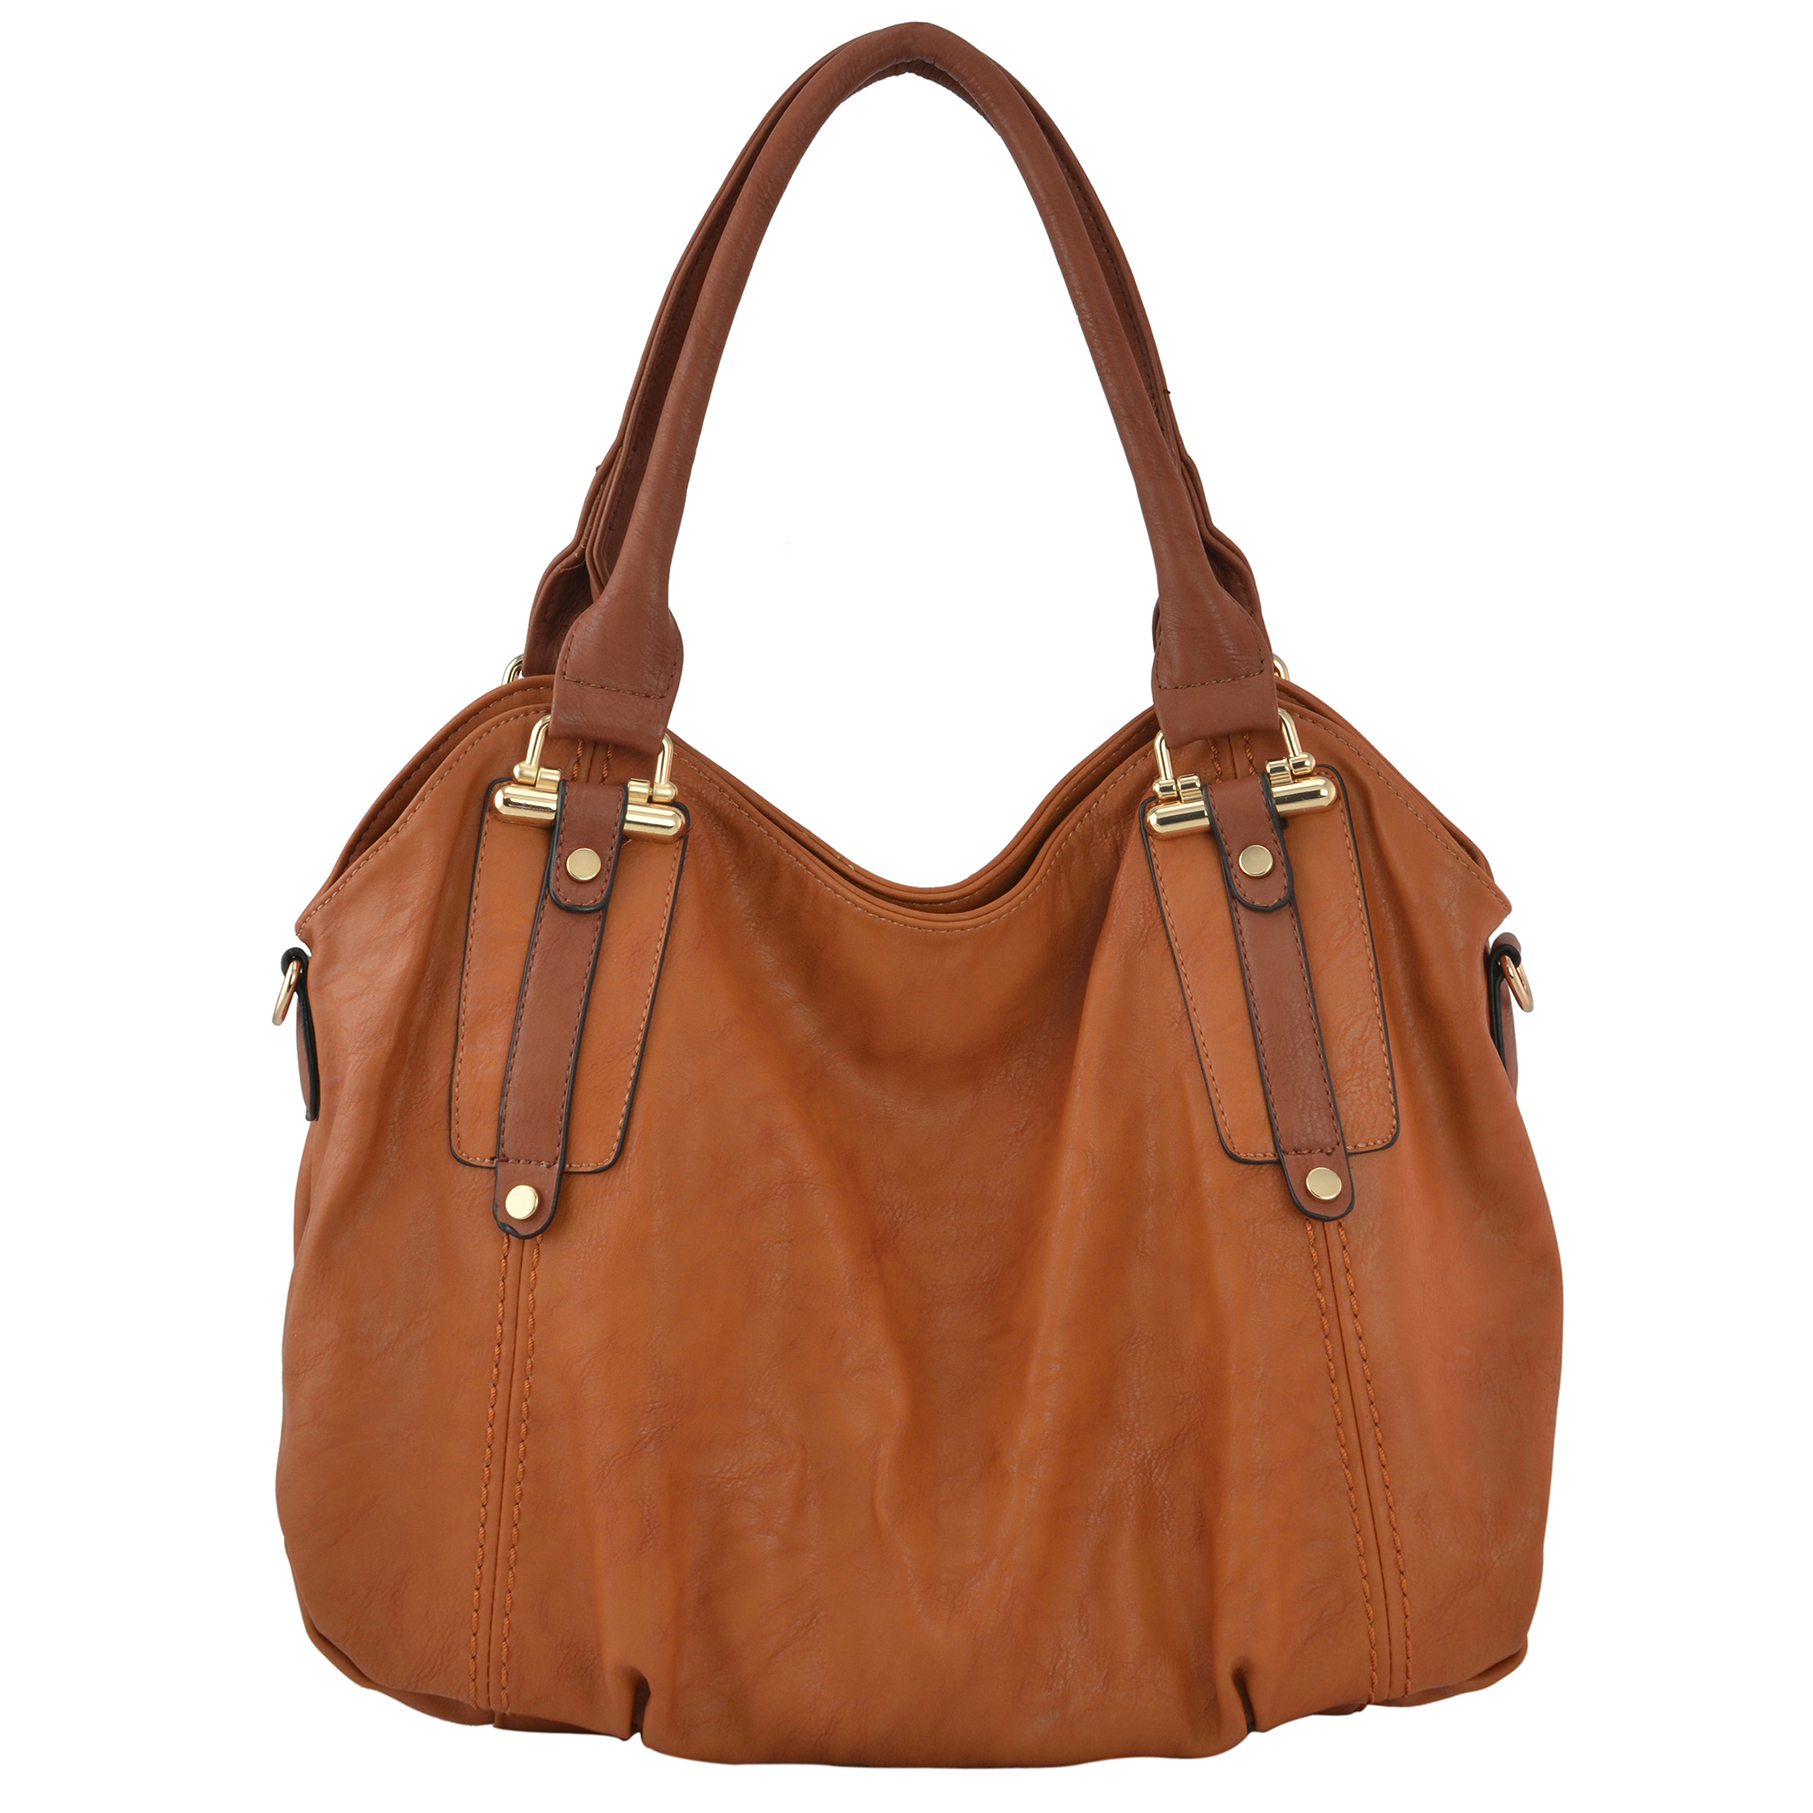 mg-collection-mimi-office-tote-style-handbag-jsh-yd-1225br-2.jpg